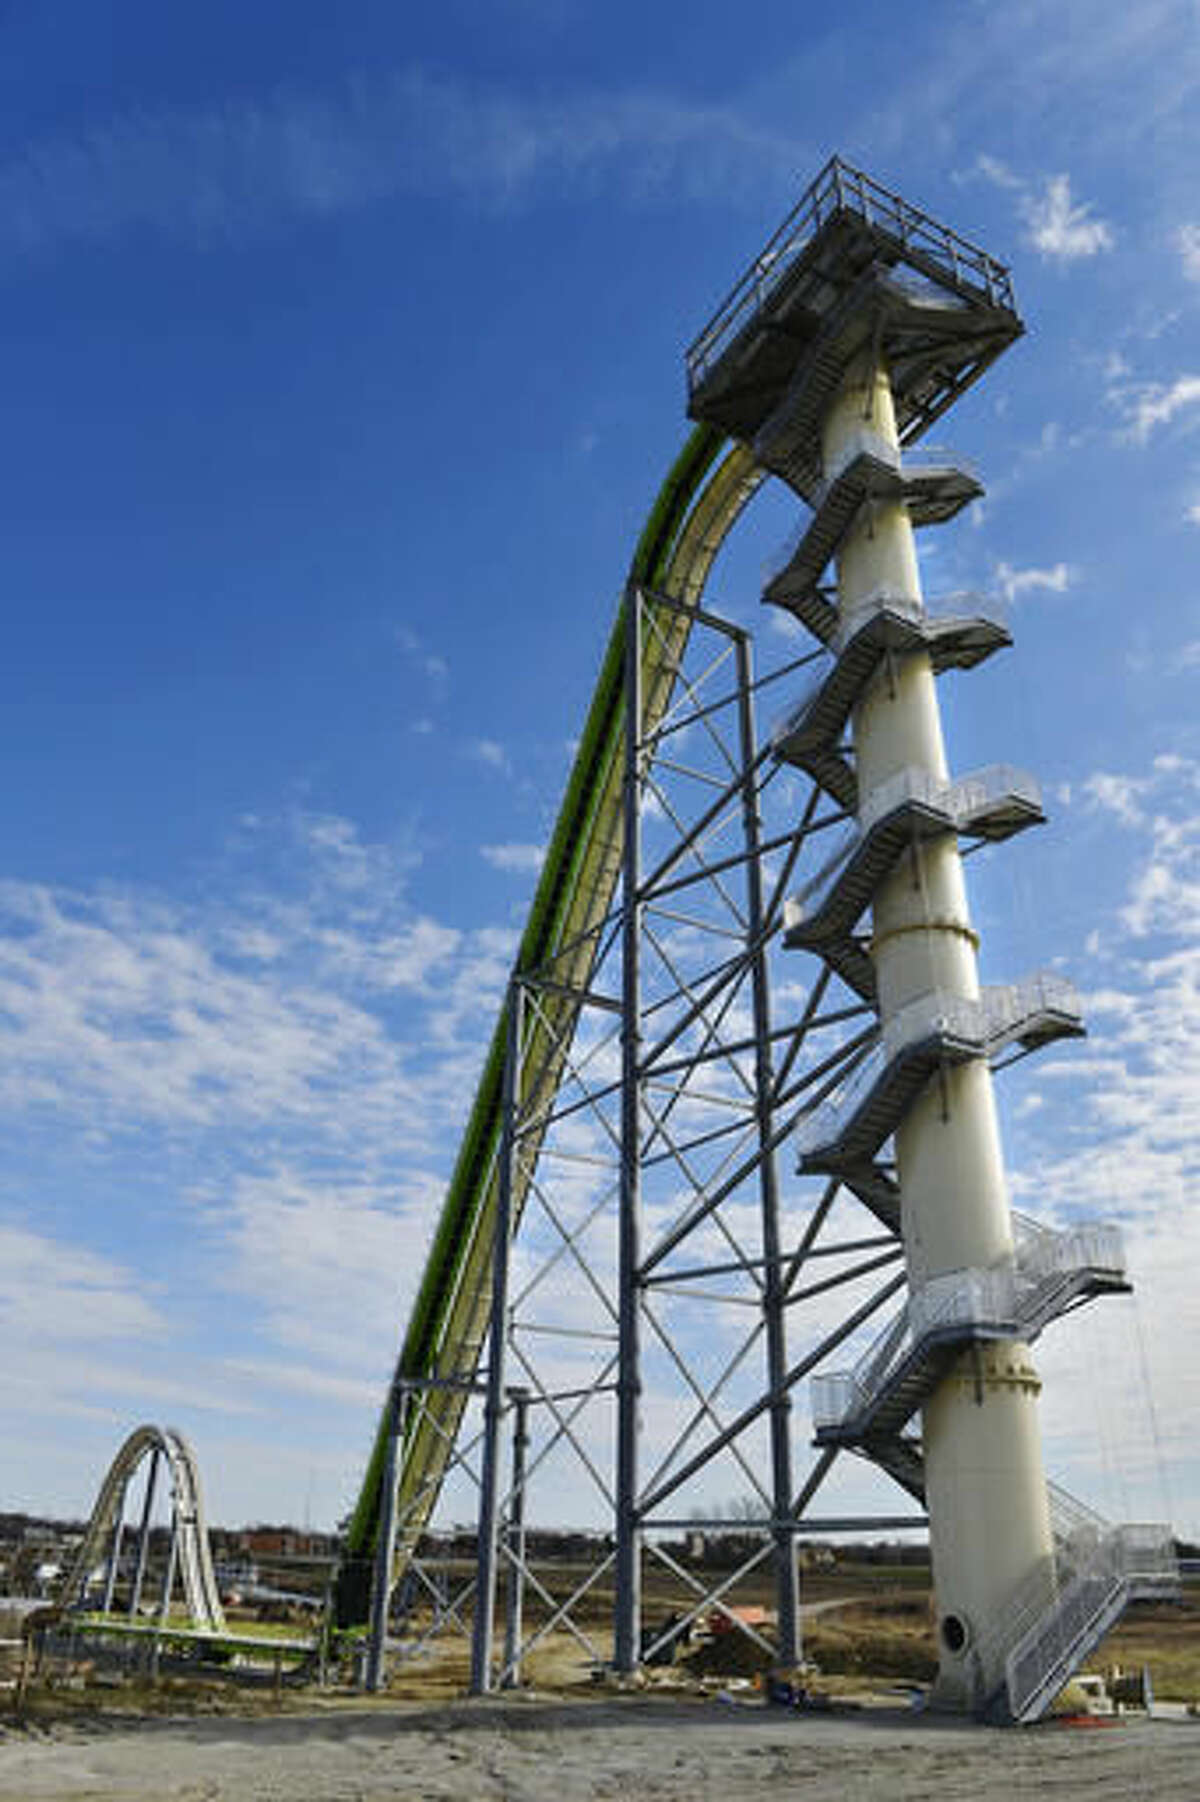 FILE - This November 2013 file photo shows Schlitterbahn Waterparks and Resorts new Verruckt waterslide in Kansas City, Kan. The waterslide on which a state lawmaker's 10-year-old son was killed Aug 7, 2016, will be demolished once the unfolding investigation of the tragedy is finished, the water park's operators said Tuesday, Nov. 22, 2016. (Jill Toyoshiba/The Kansas City Star via AP, File)